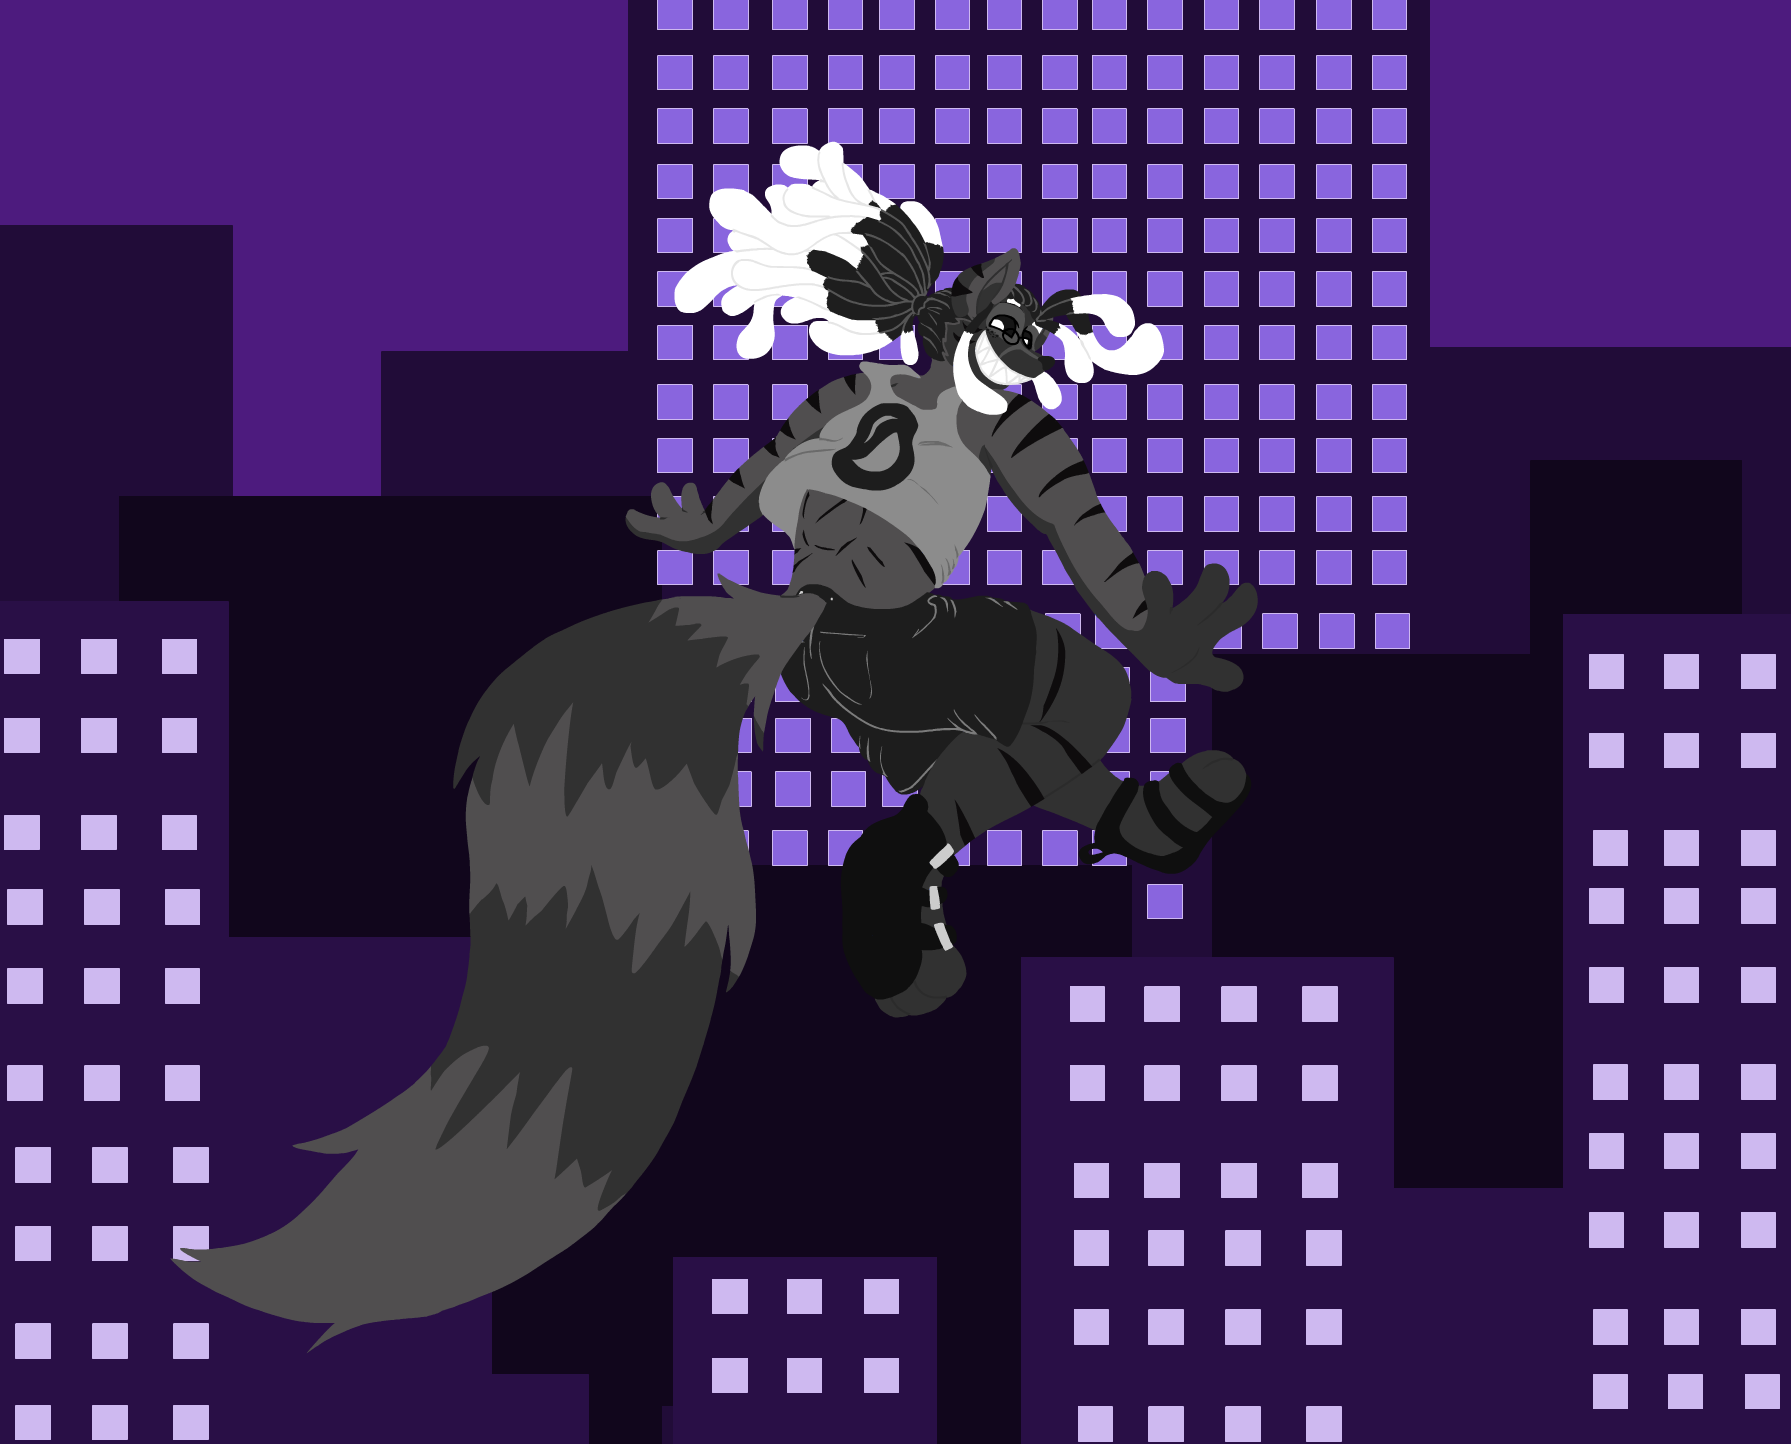 City jump thing whatever~